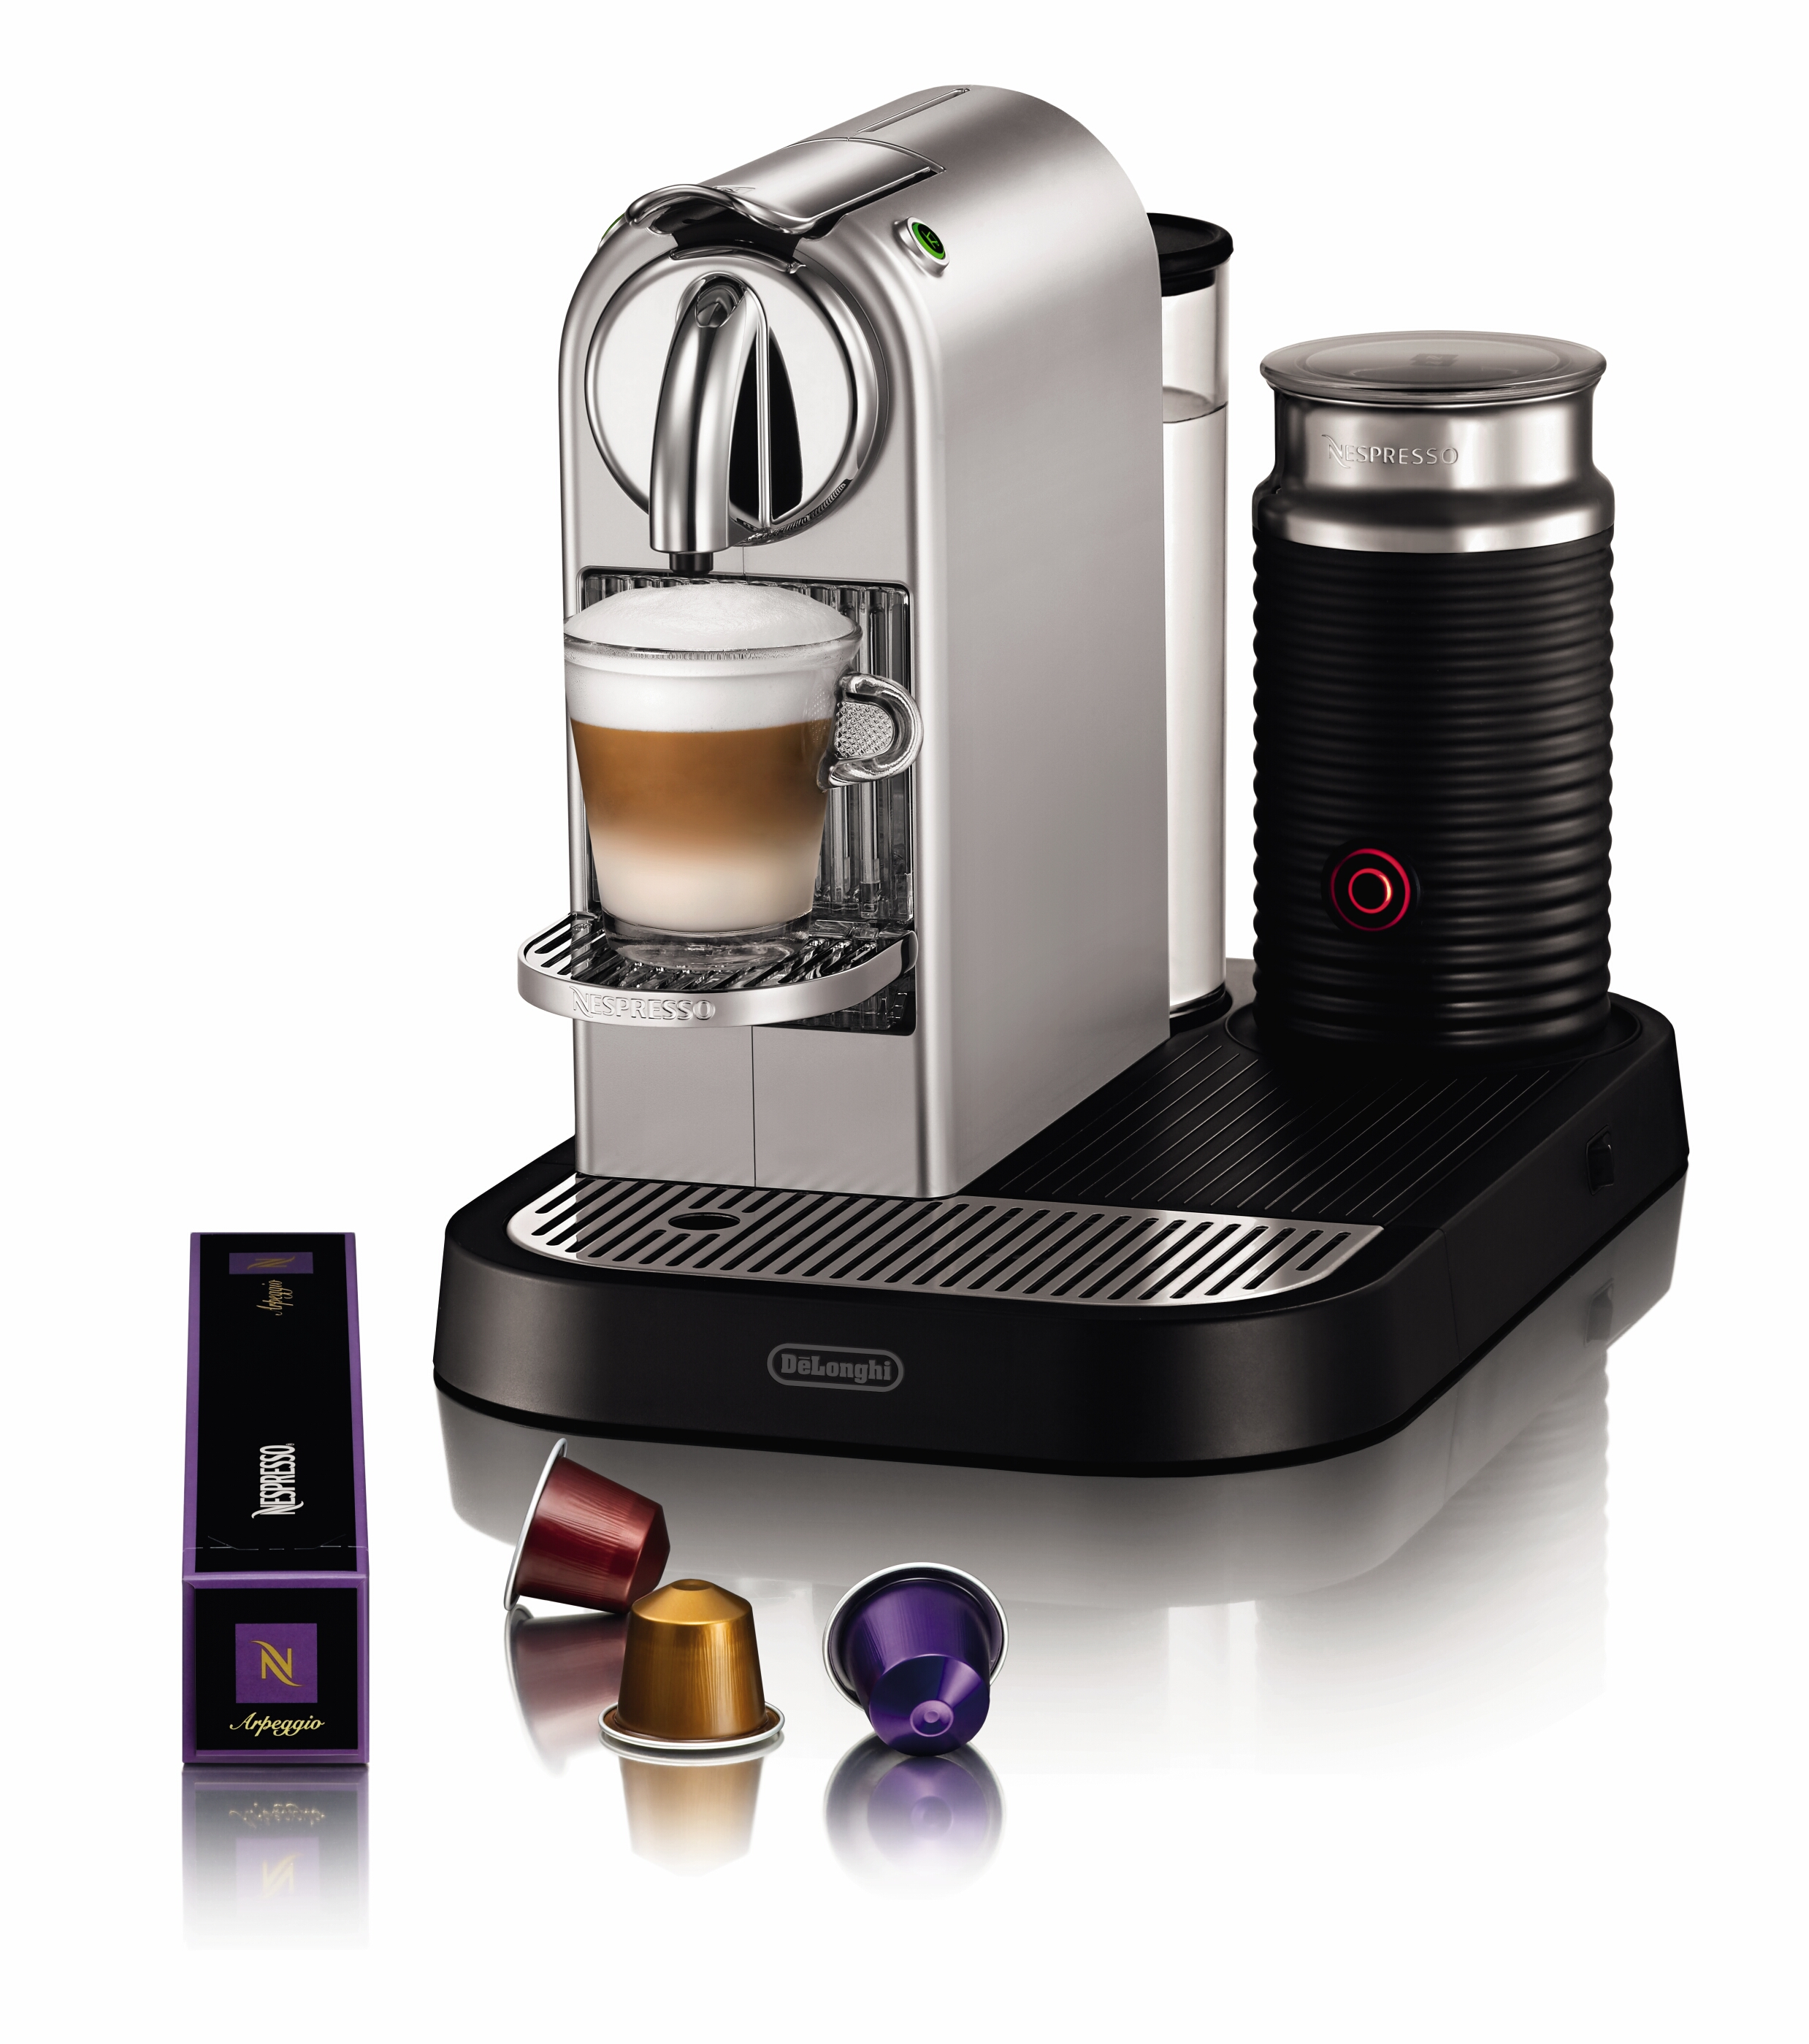 nespresso maschine citi z milk delonghi silverchrome nespresso pr sentiert neue modelle der. Black Bedroom Furniture Sets. Home Design Ideas